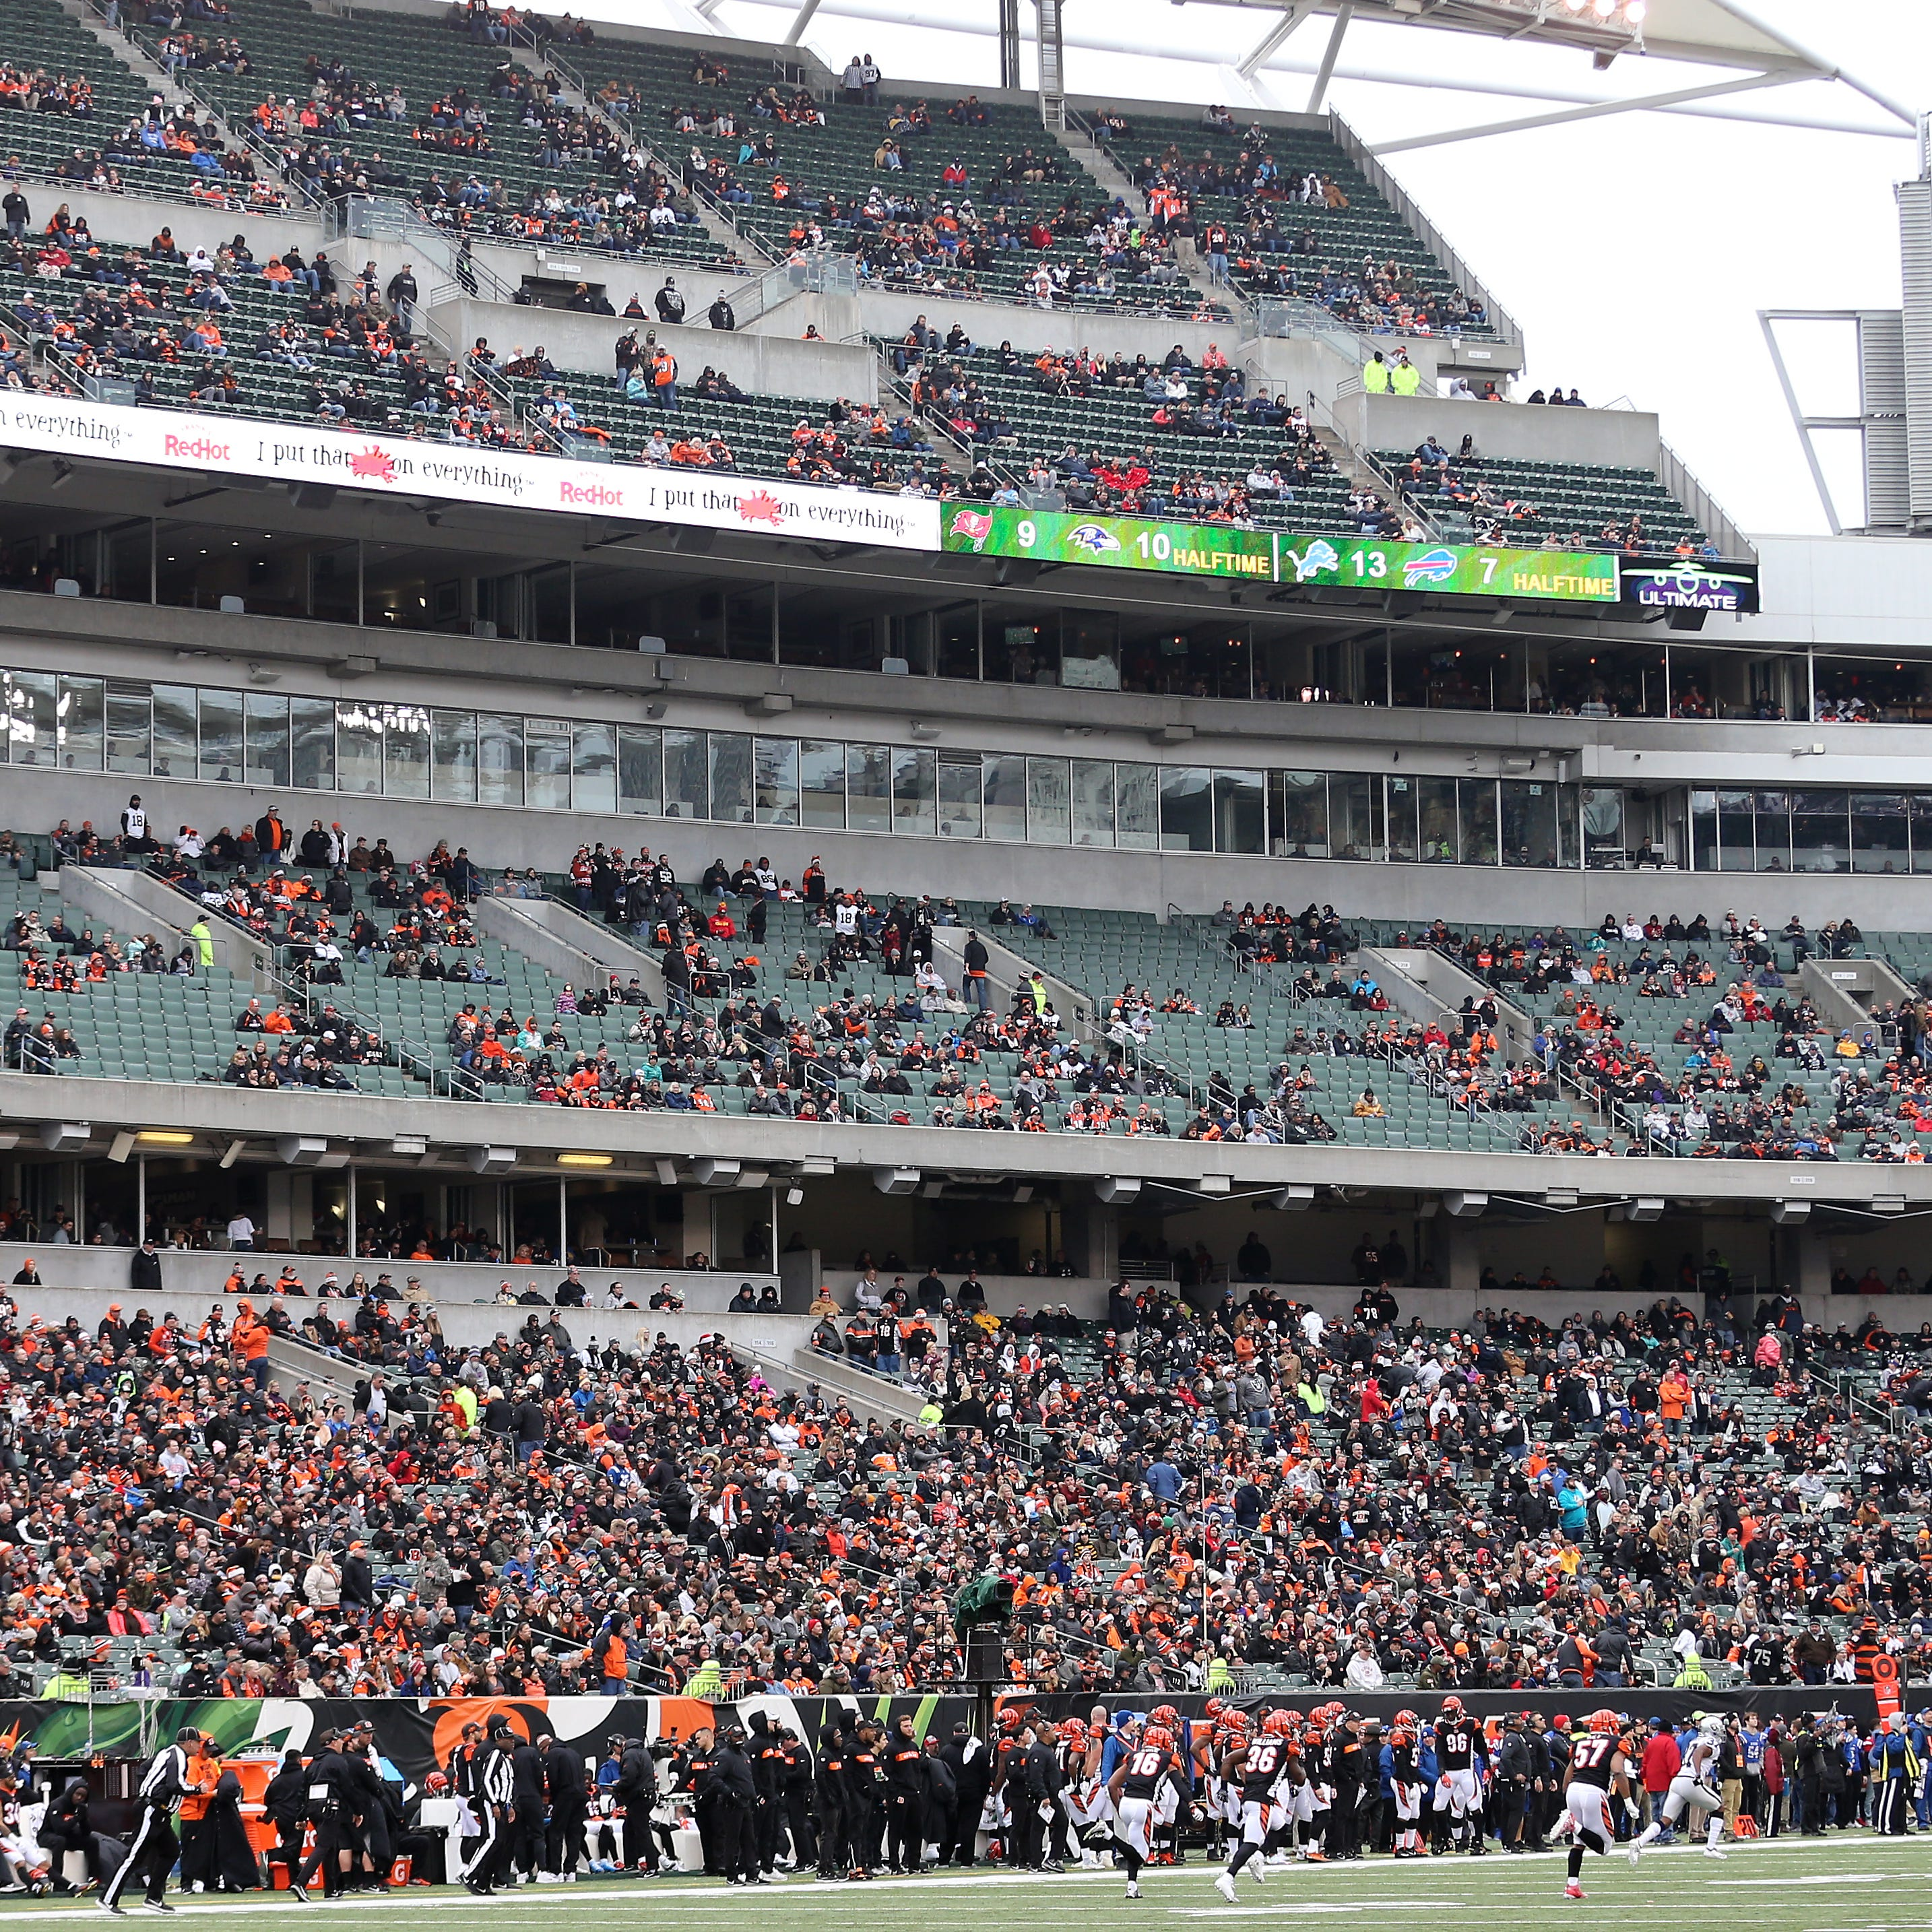 Paul Daugherty: What's the sound of one hand clapping? Cincinnati Bengals beat Oakland Raiders